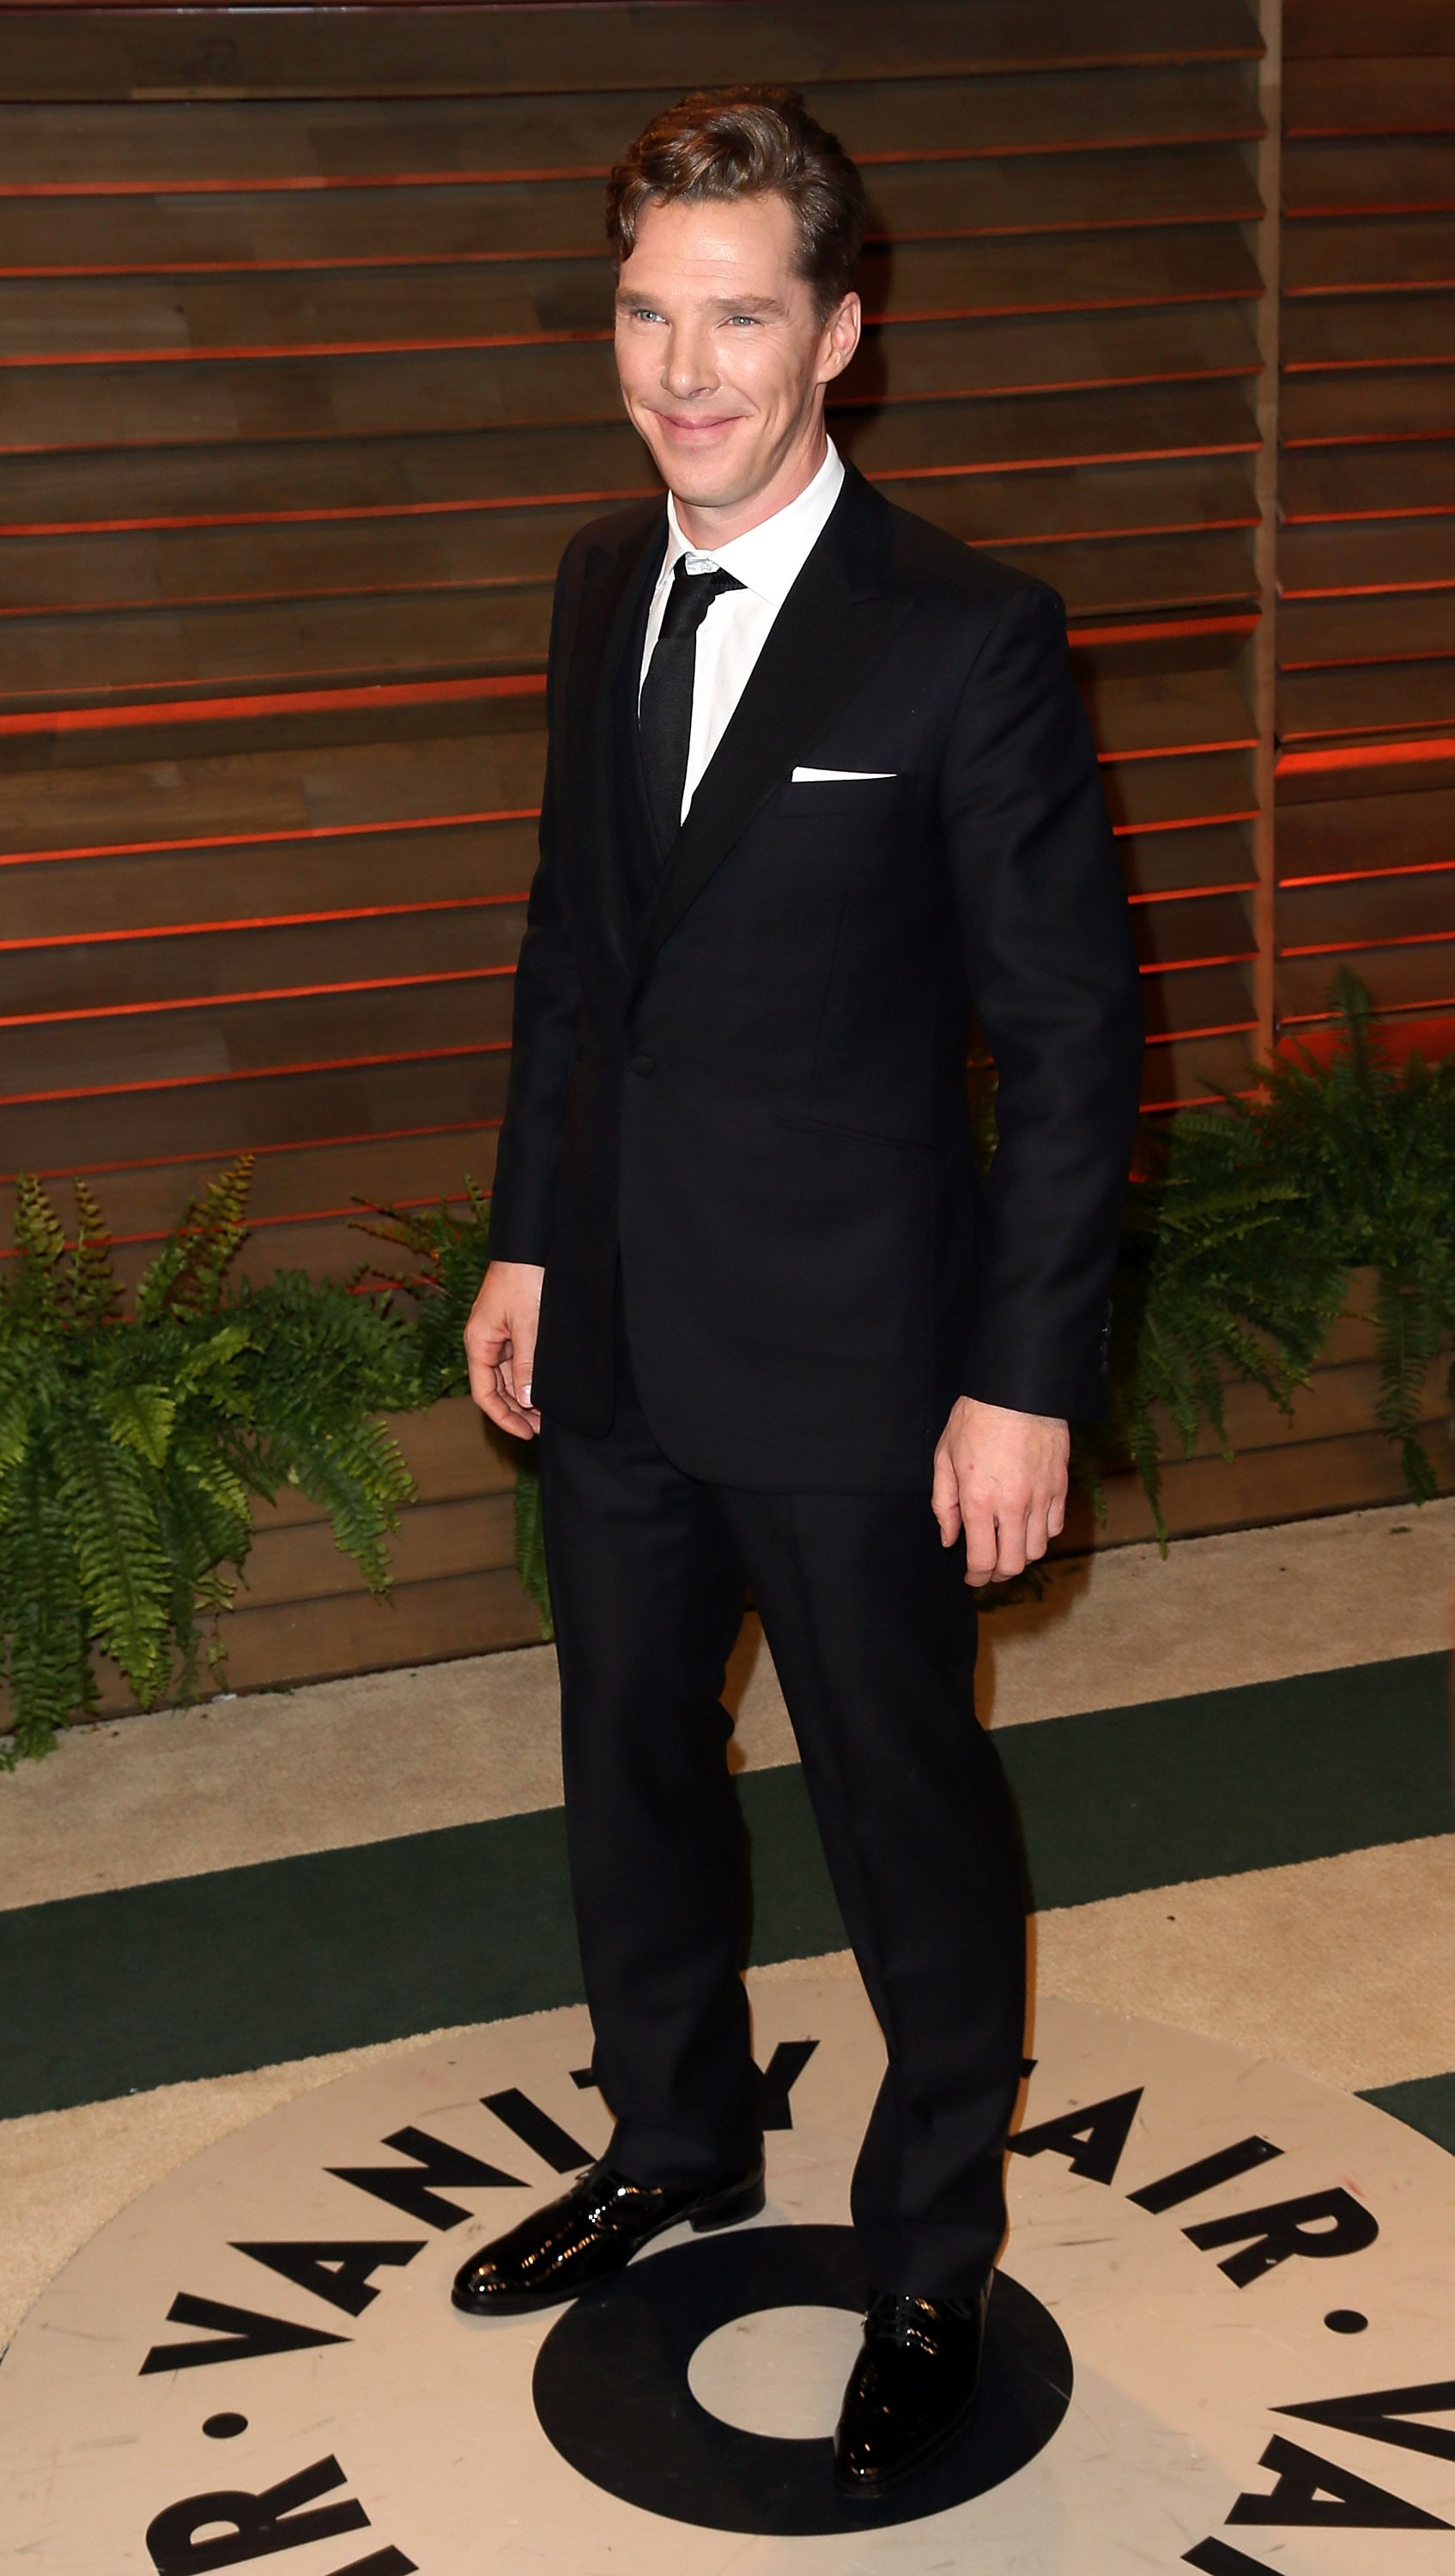 And Now He's Officially Made It Into the Fashion Hall of Fame! Well Done, Mr. Cumberbatch